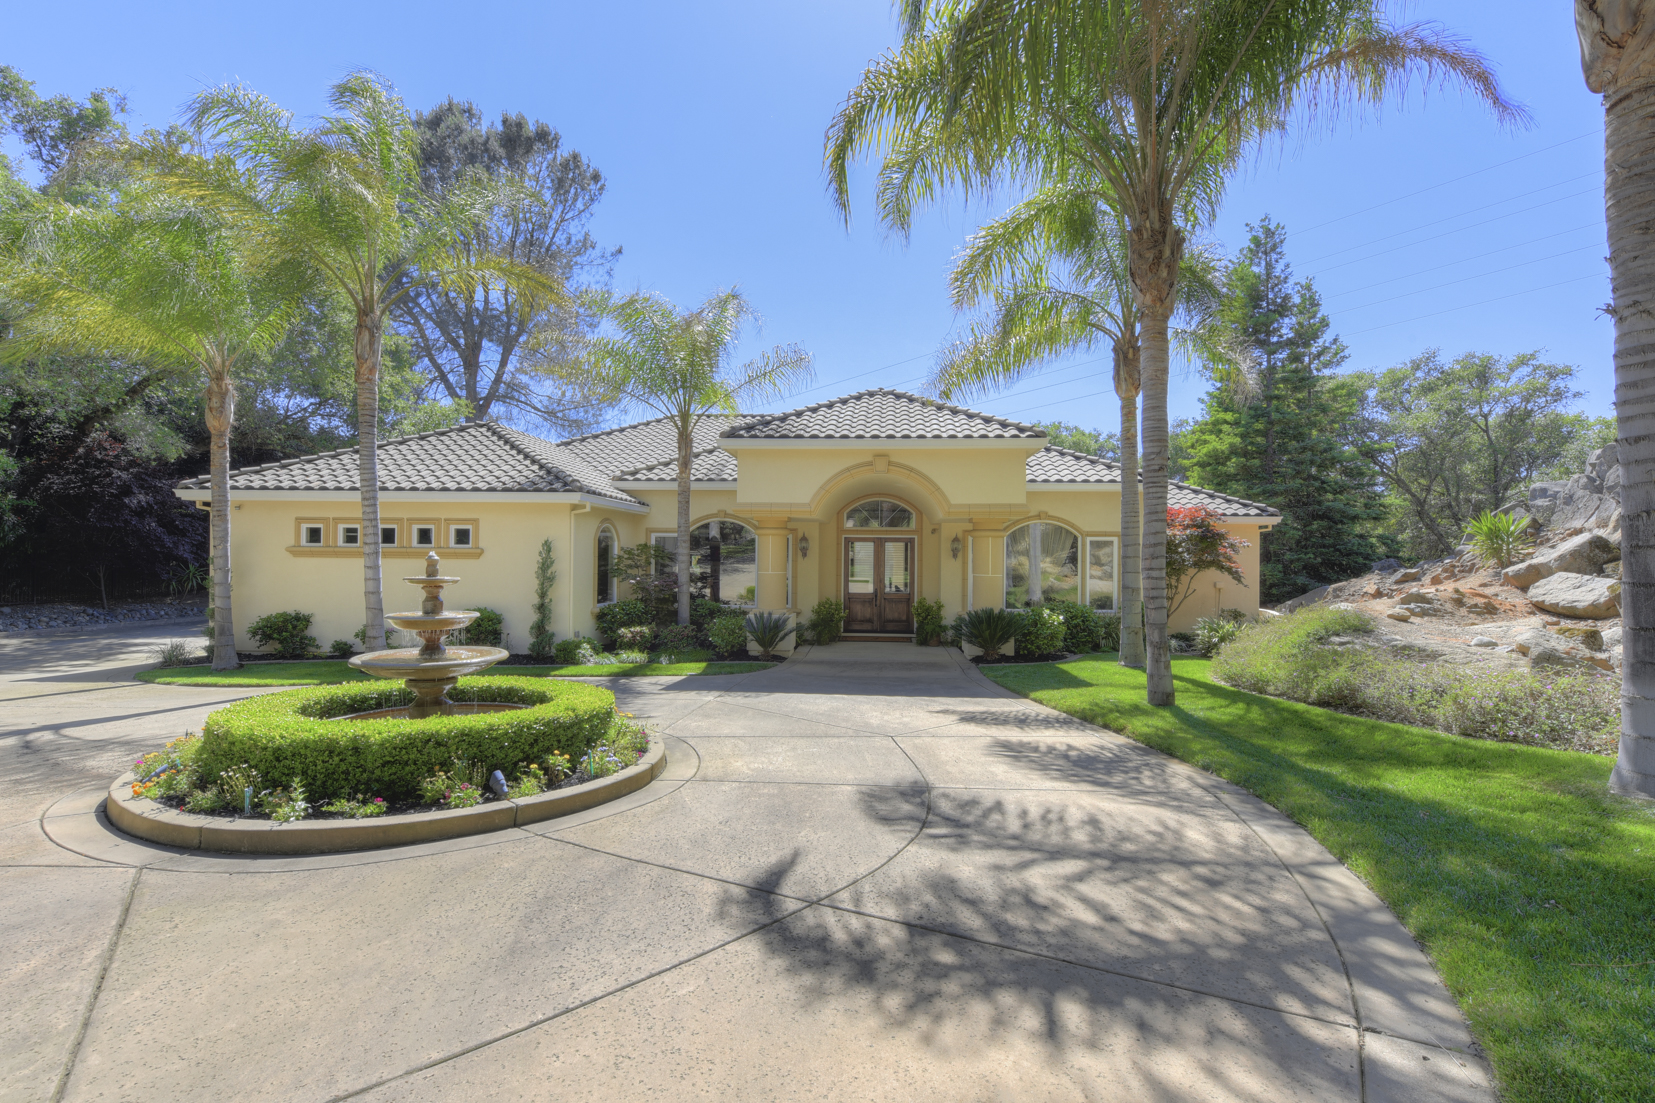 Casa Unifamiliar por un Venta en 5986 Alta Loma Ct, Granite Bay, CA 95746 Granite Bay, California 95746 Estados Unidos